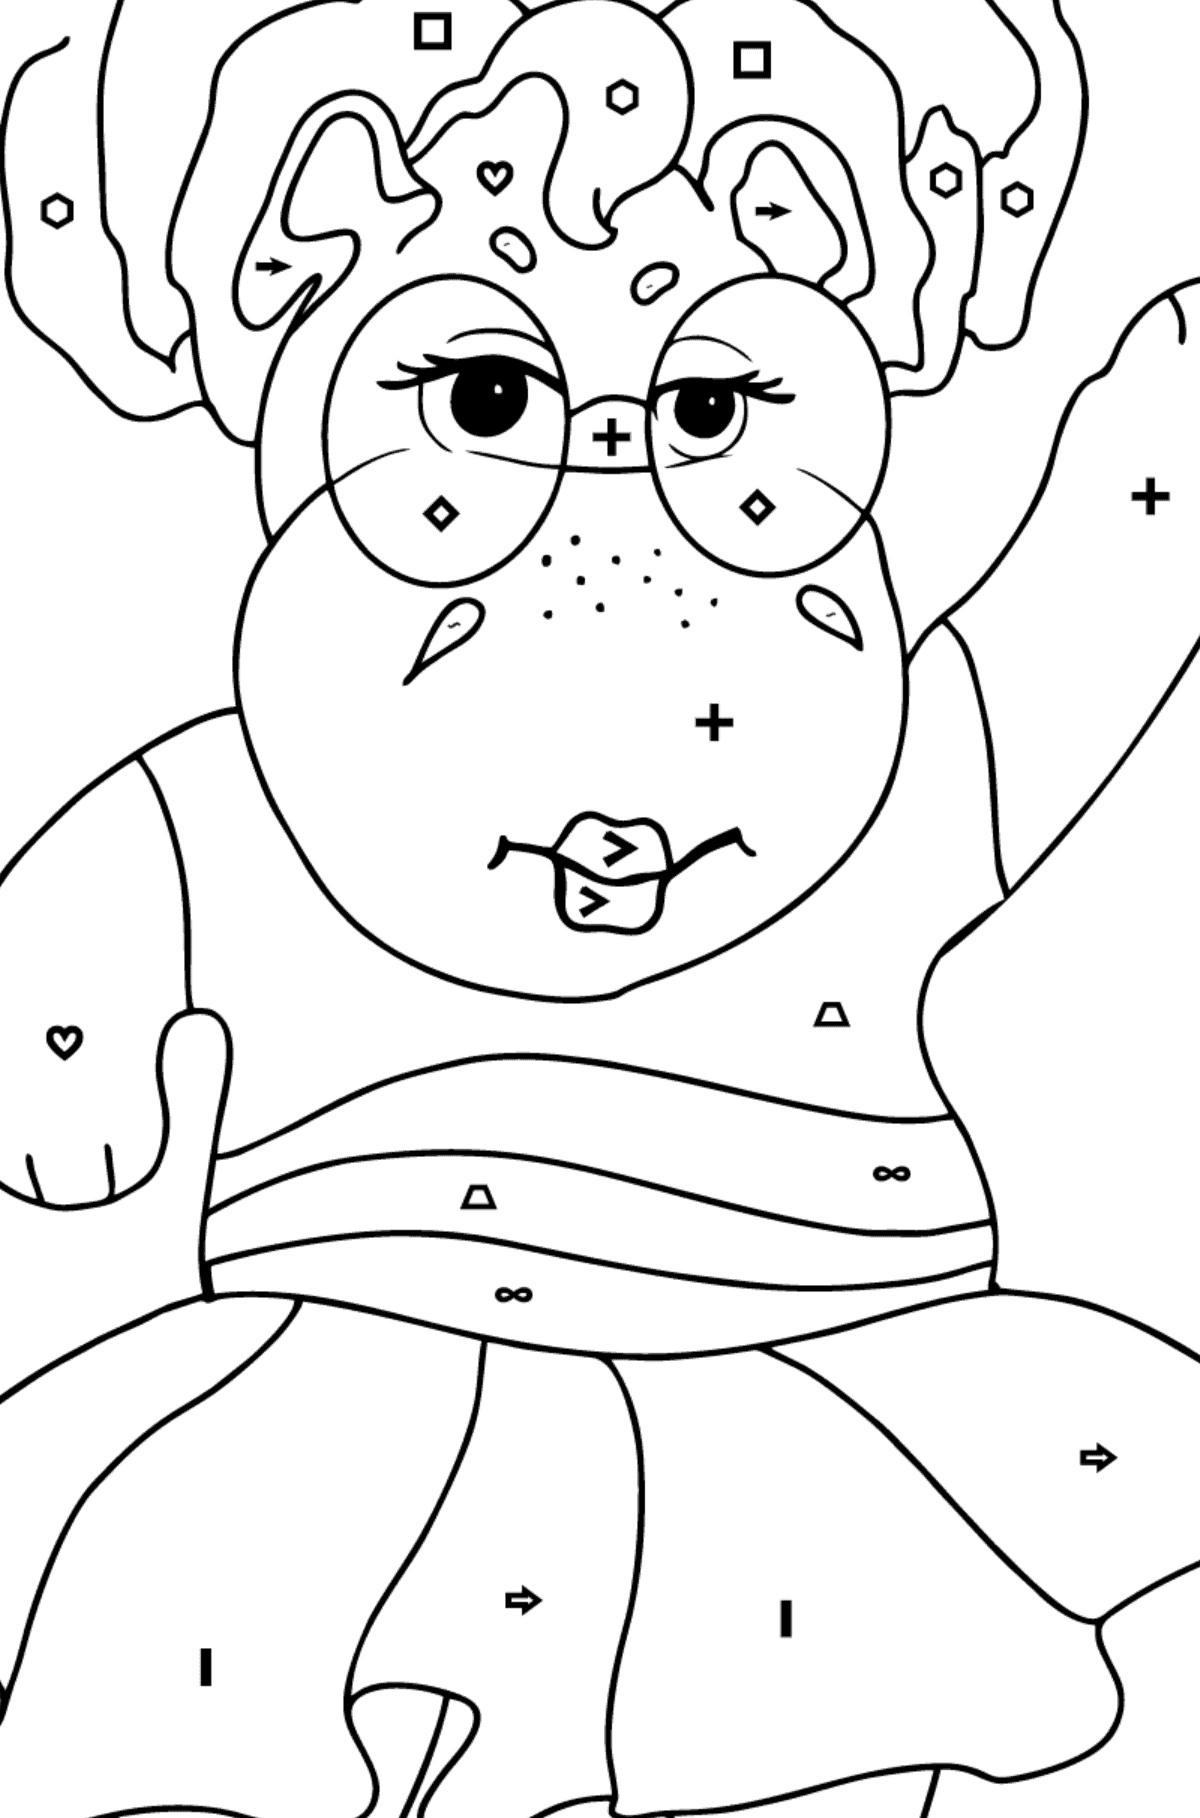 Coloring Page - A Hippo in Sunglasses for Children  - Color by Symbols and Geometric Shapes